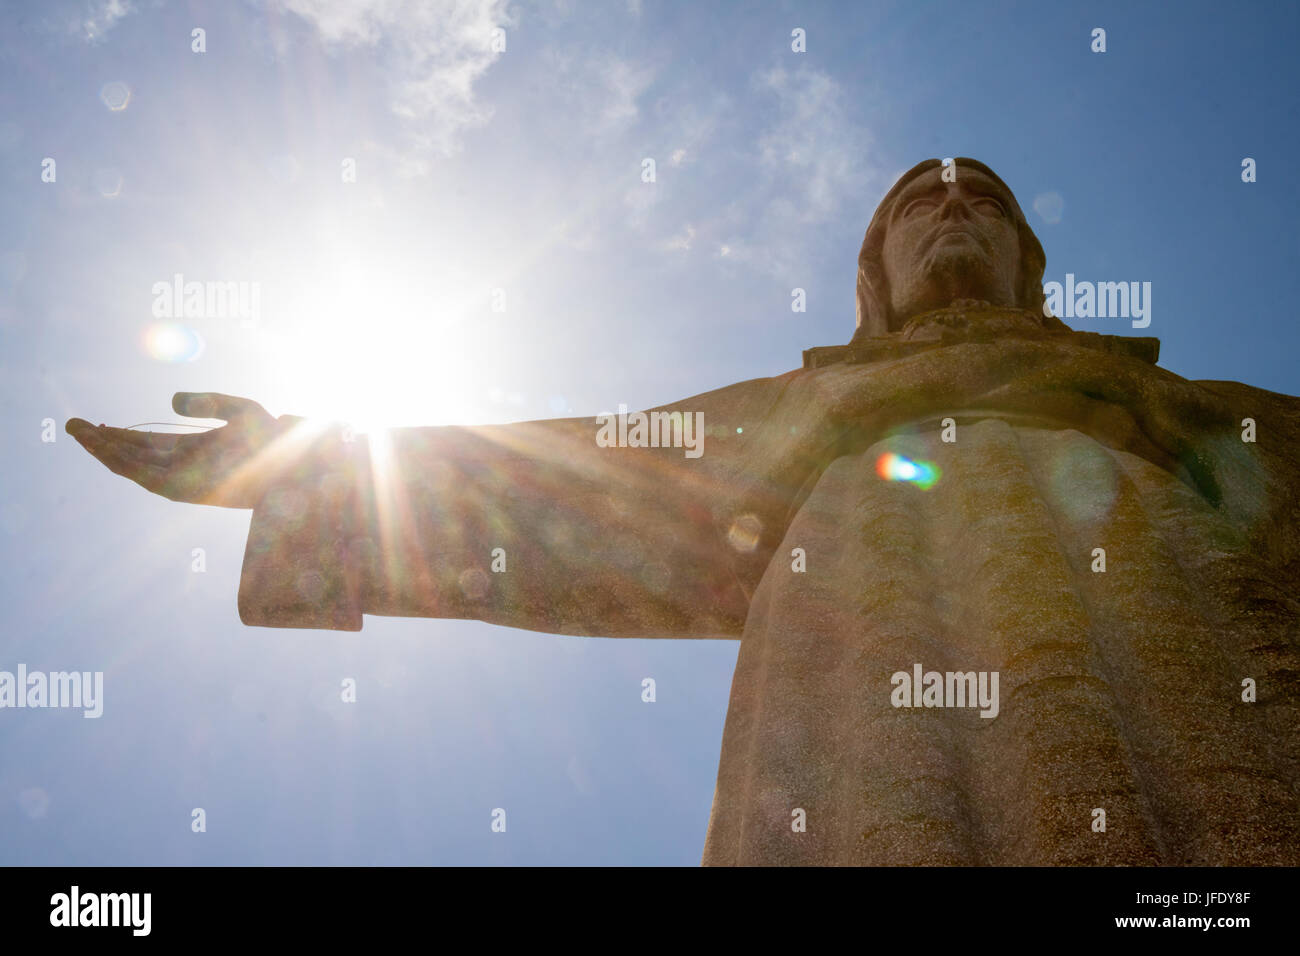 Sun behind Christus Rei Statue  in Lisbon, Portugal, Europe - Stock Image